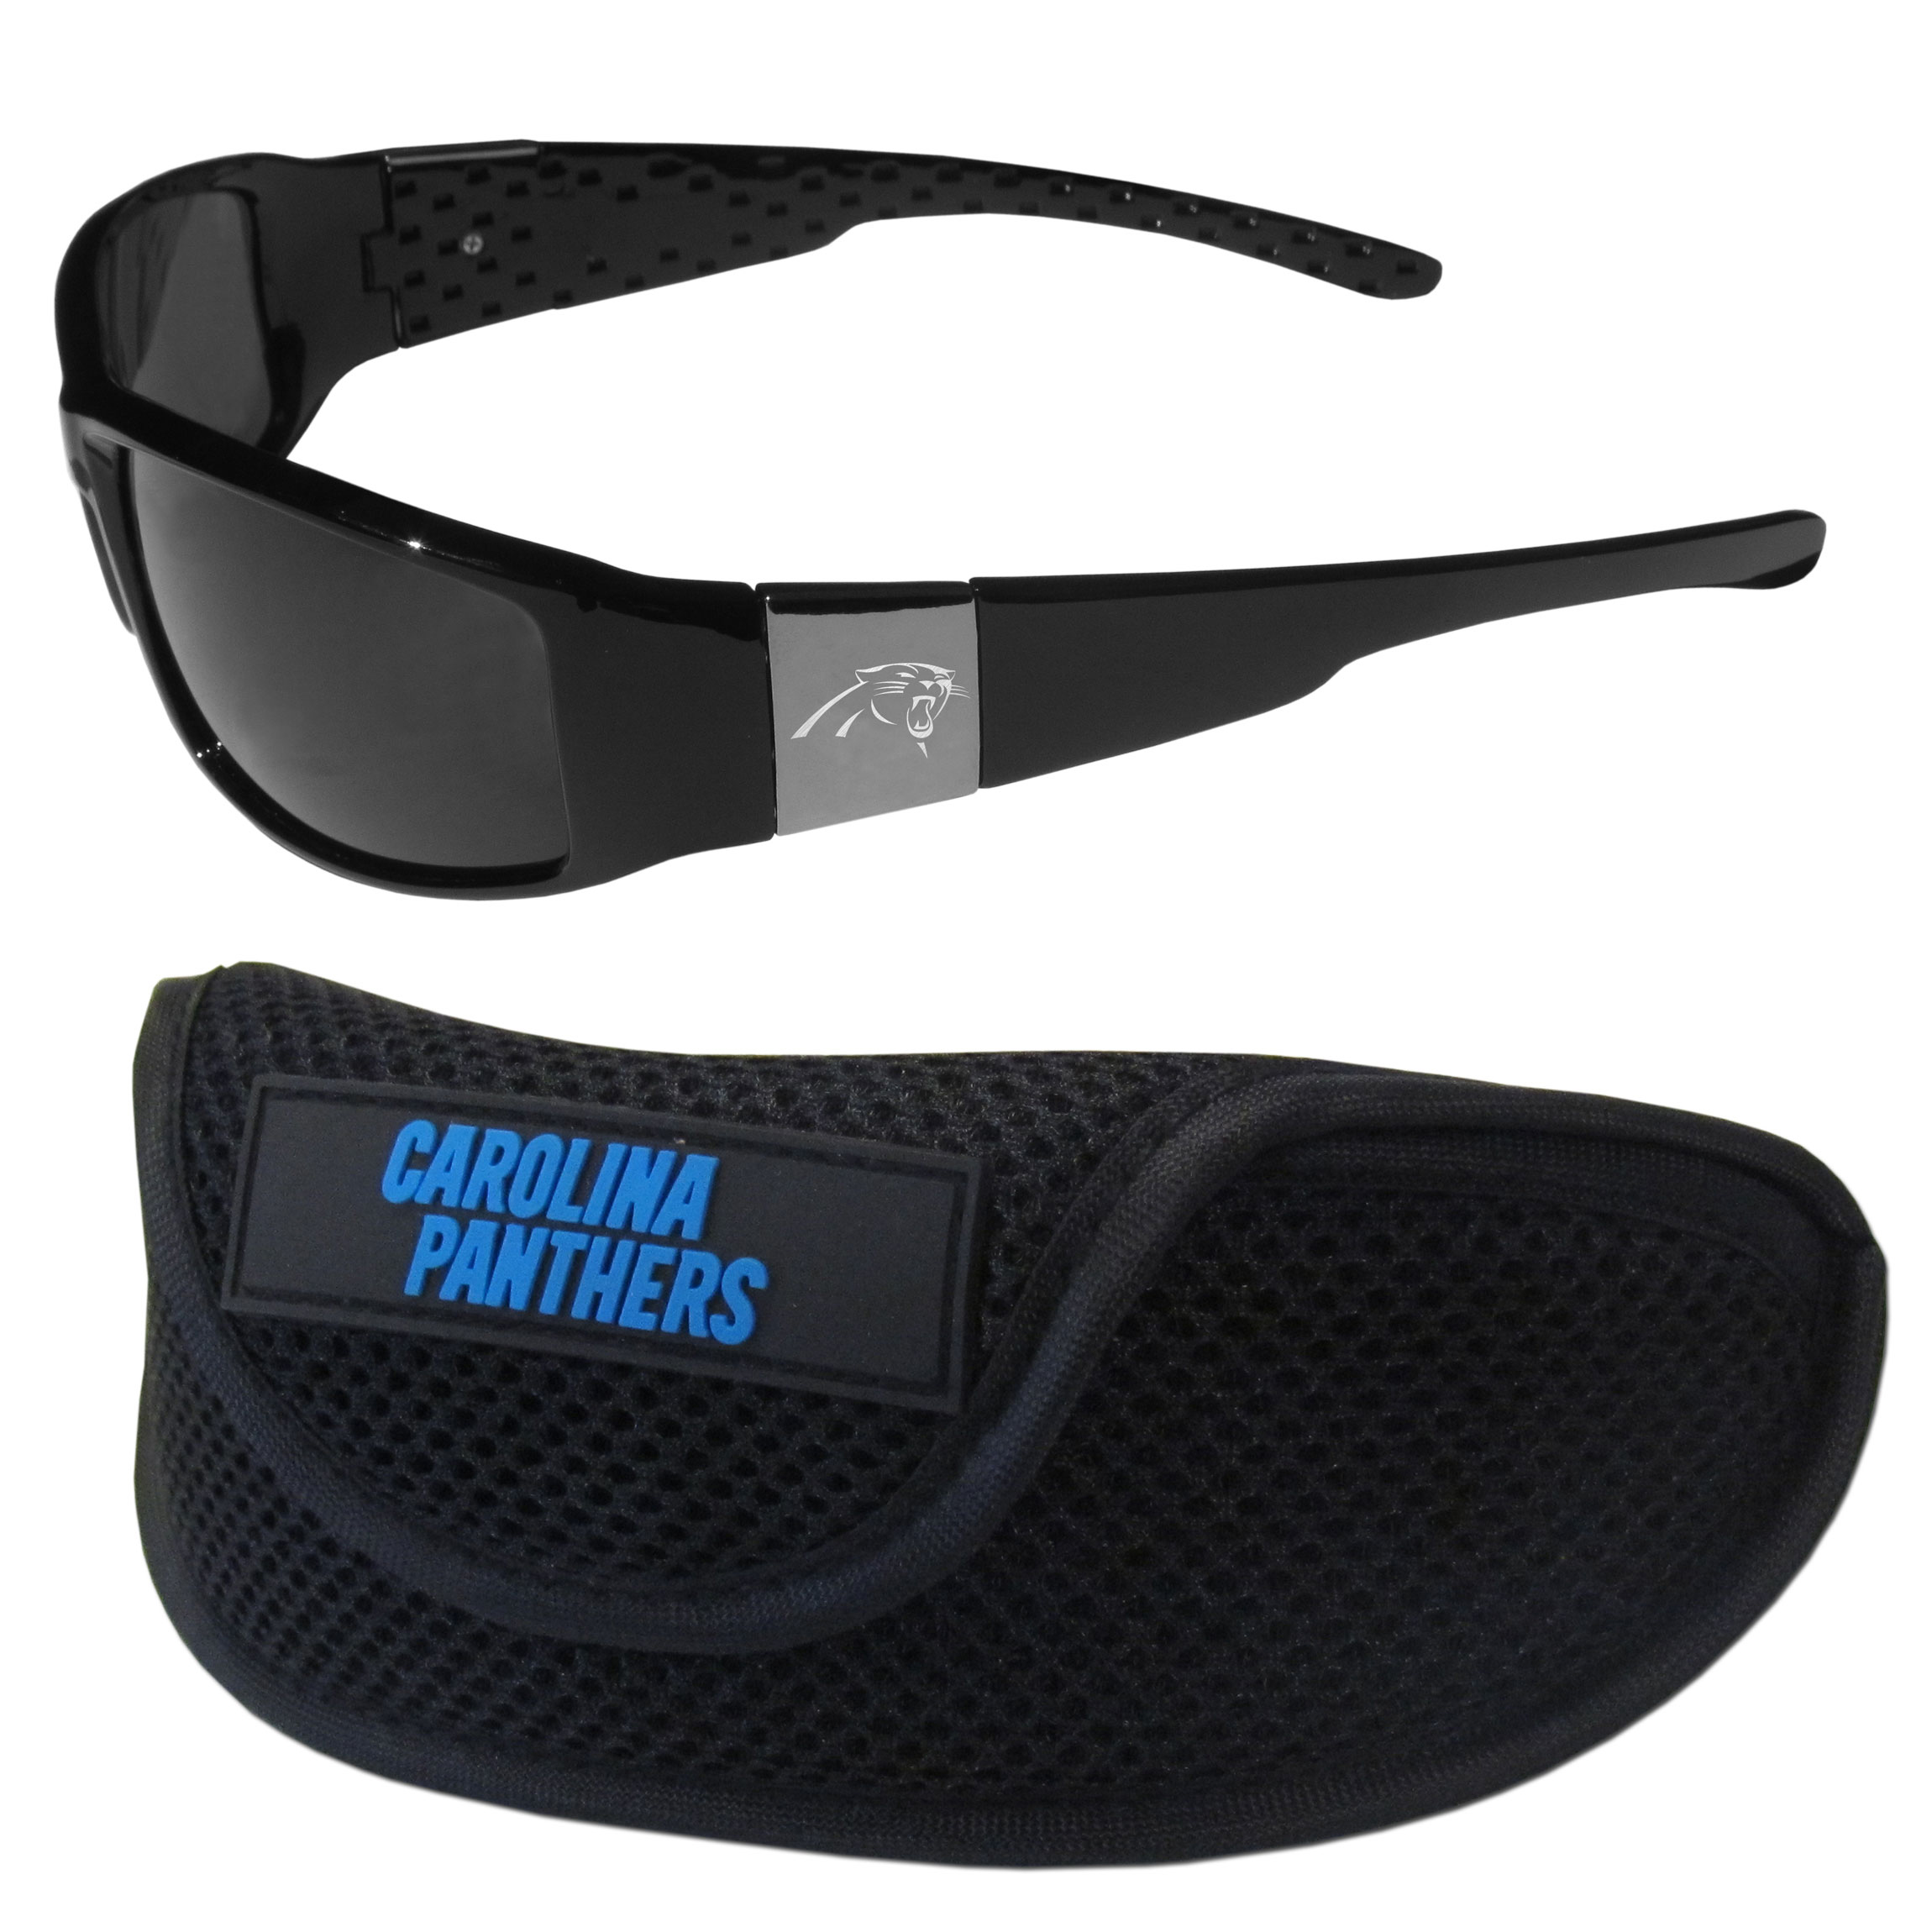 Carolina Panthers Chrome Wrap Sunglasses and Sports Case - Our sleek and stylish Carolina Panthers chrome wrap sunglasses and our sporty mesh case. The sunglasses feature etched team logos on each arm and 100% UVA/UVB protection. The case features a large and colorful team emblem.